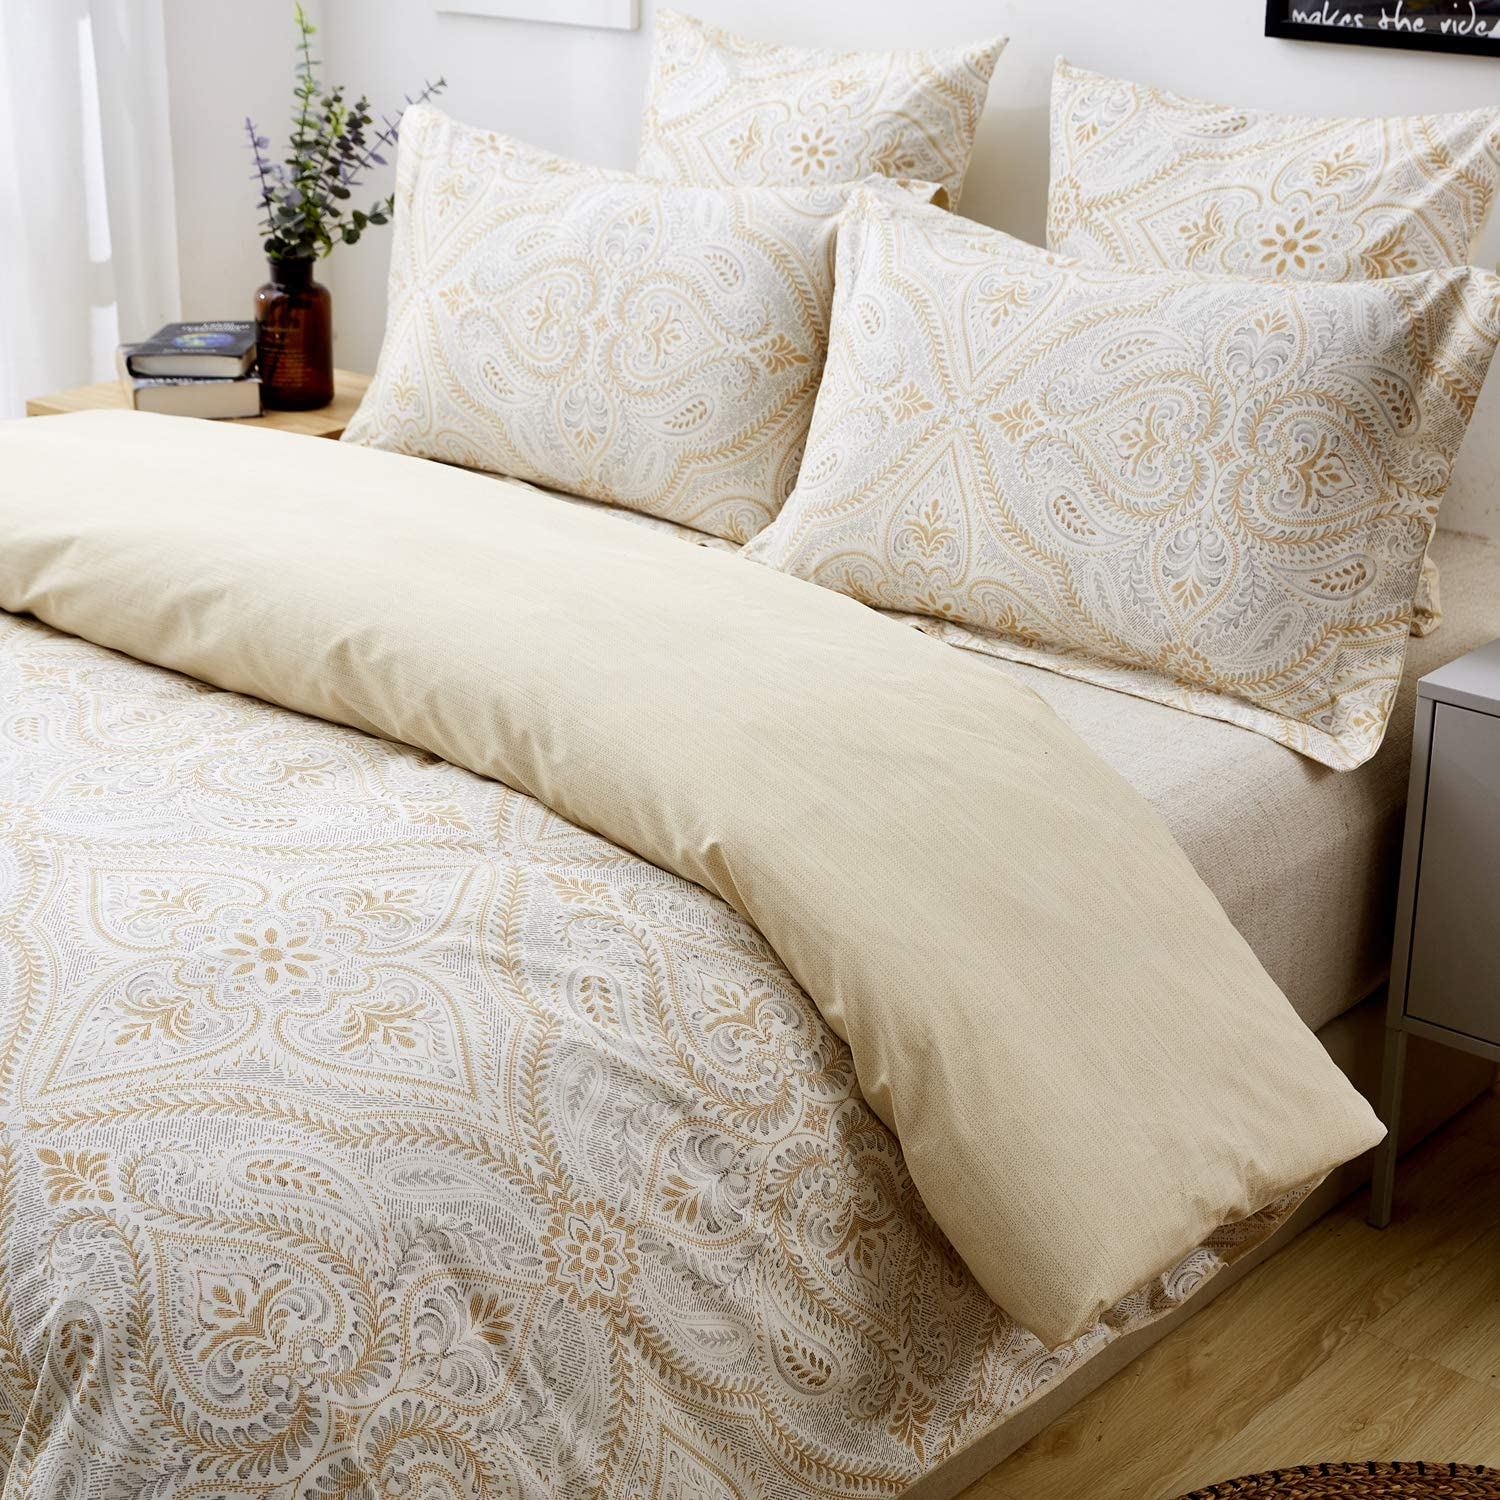 FADFAY Duvet Cover Set Twin XL Paisley Bedding 100% Cotton Soft Hypoallergenic Gold Classy Luxurious Bedding with Hidden Zipper Closure 3 Pieces, Twin Extra Long Size for Dorm Room